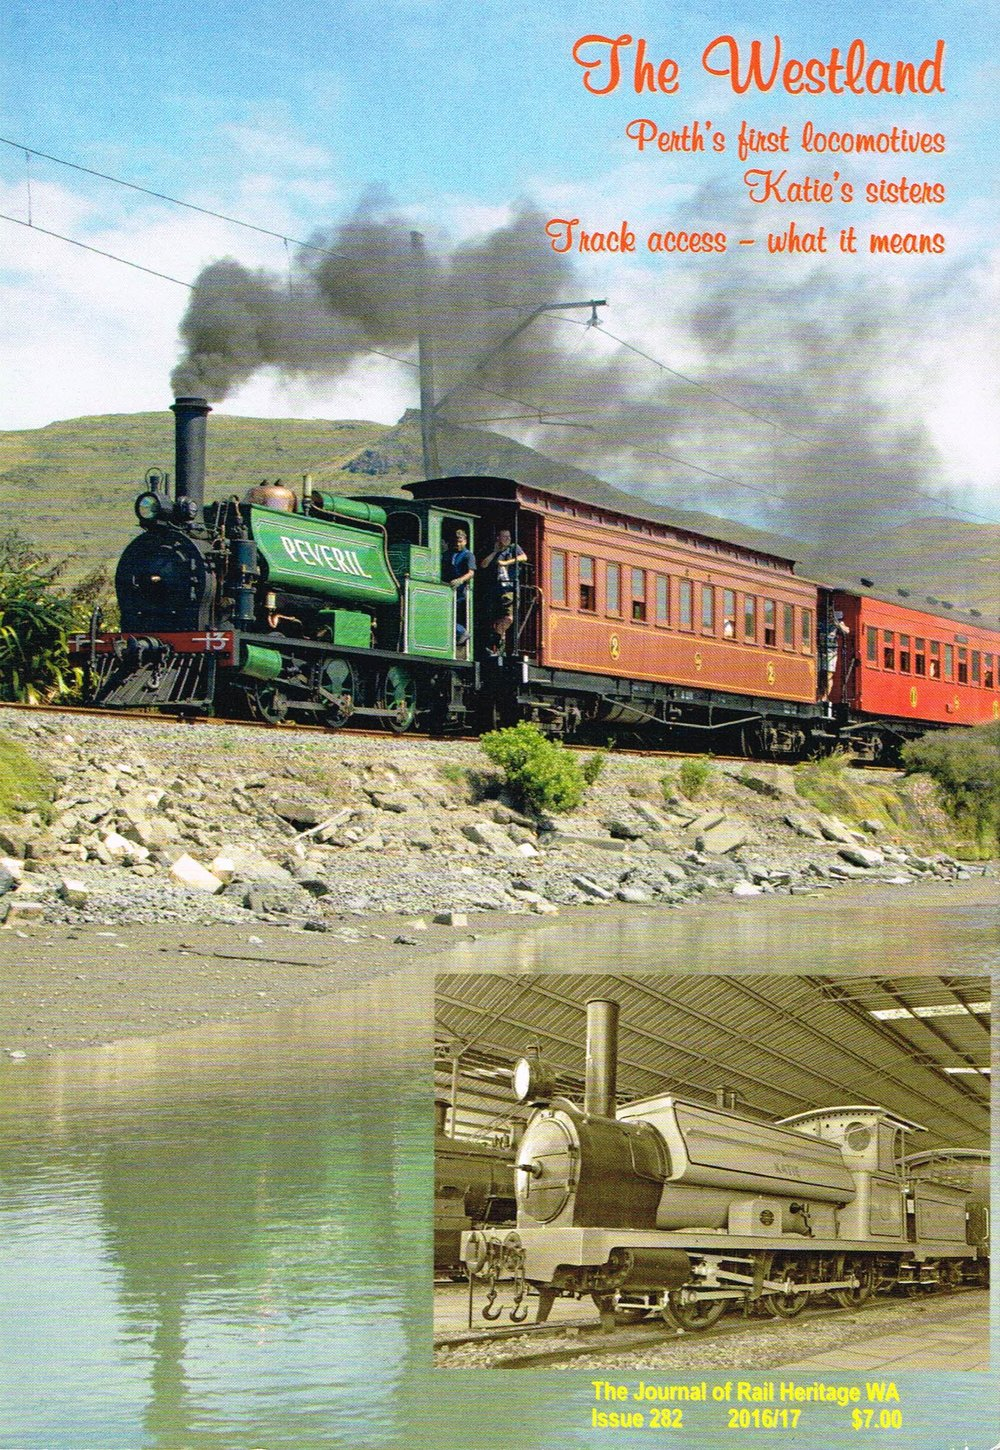 The Westland:Perth's first locomotives, Katie's sisters, track access - what it means. Jeff Austin, Geoffrey Higham, Michael Gillooly and Simon Barber